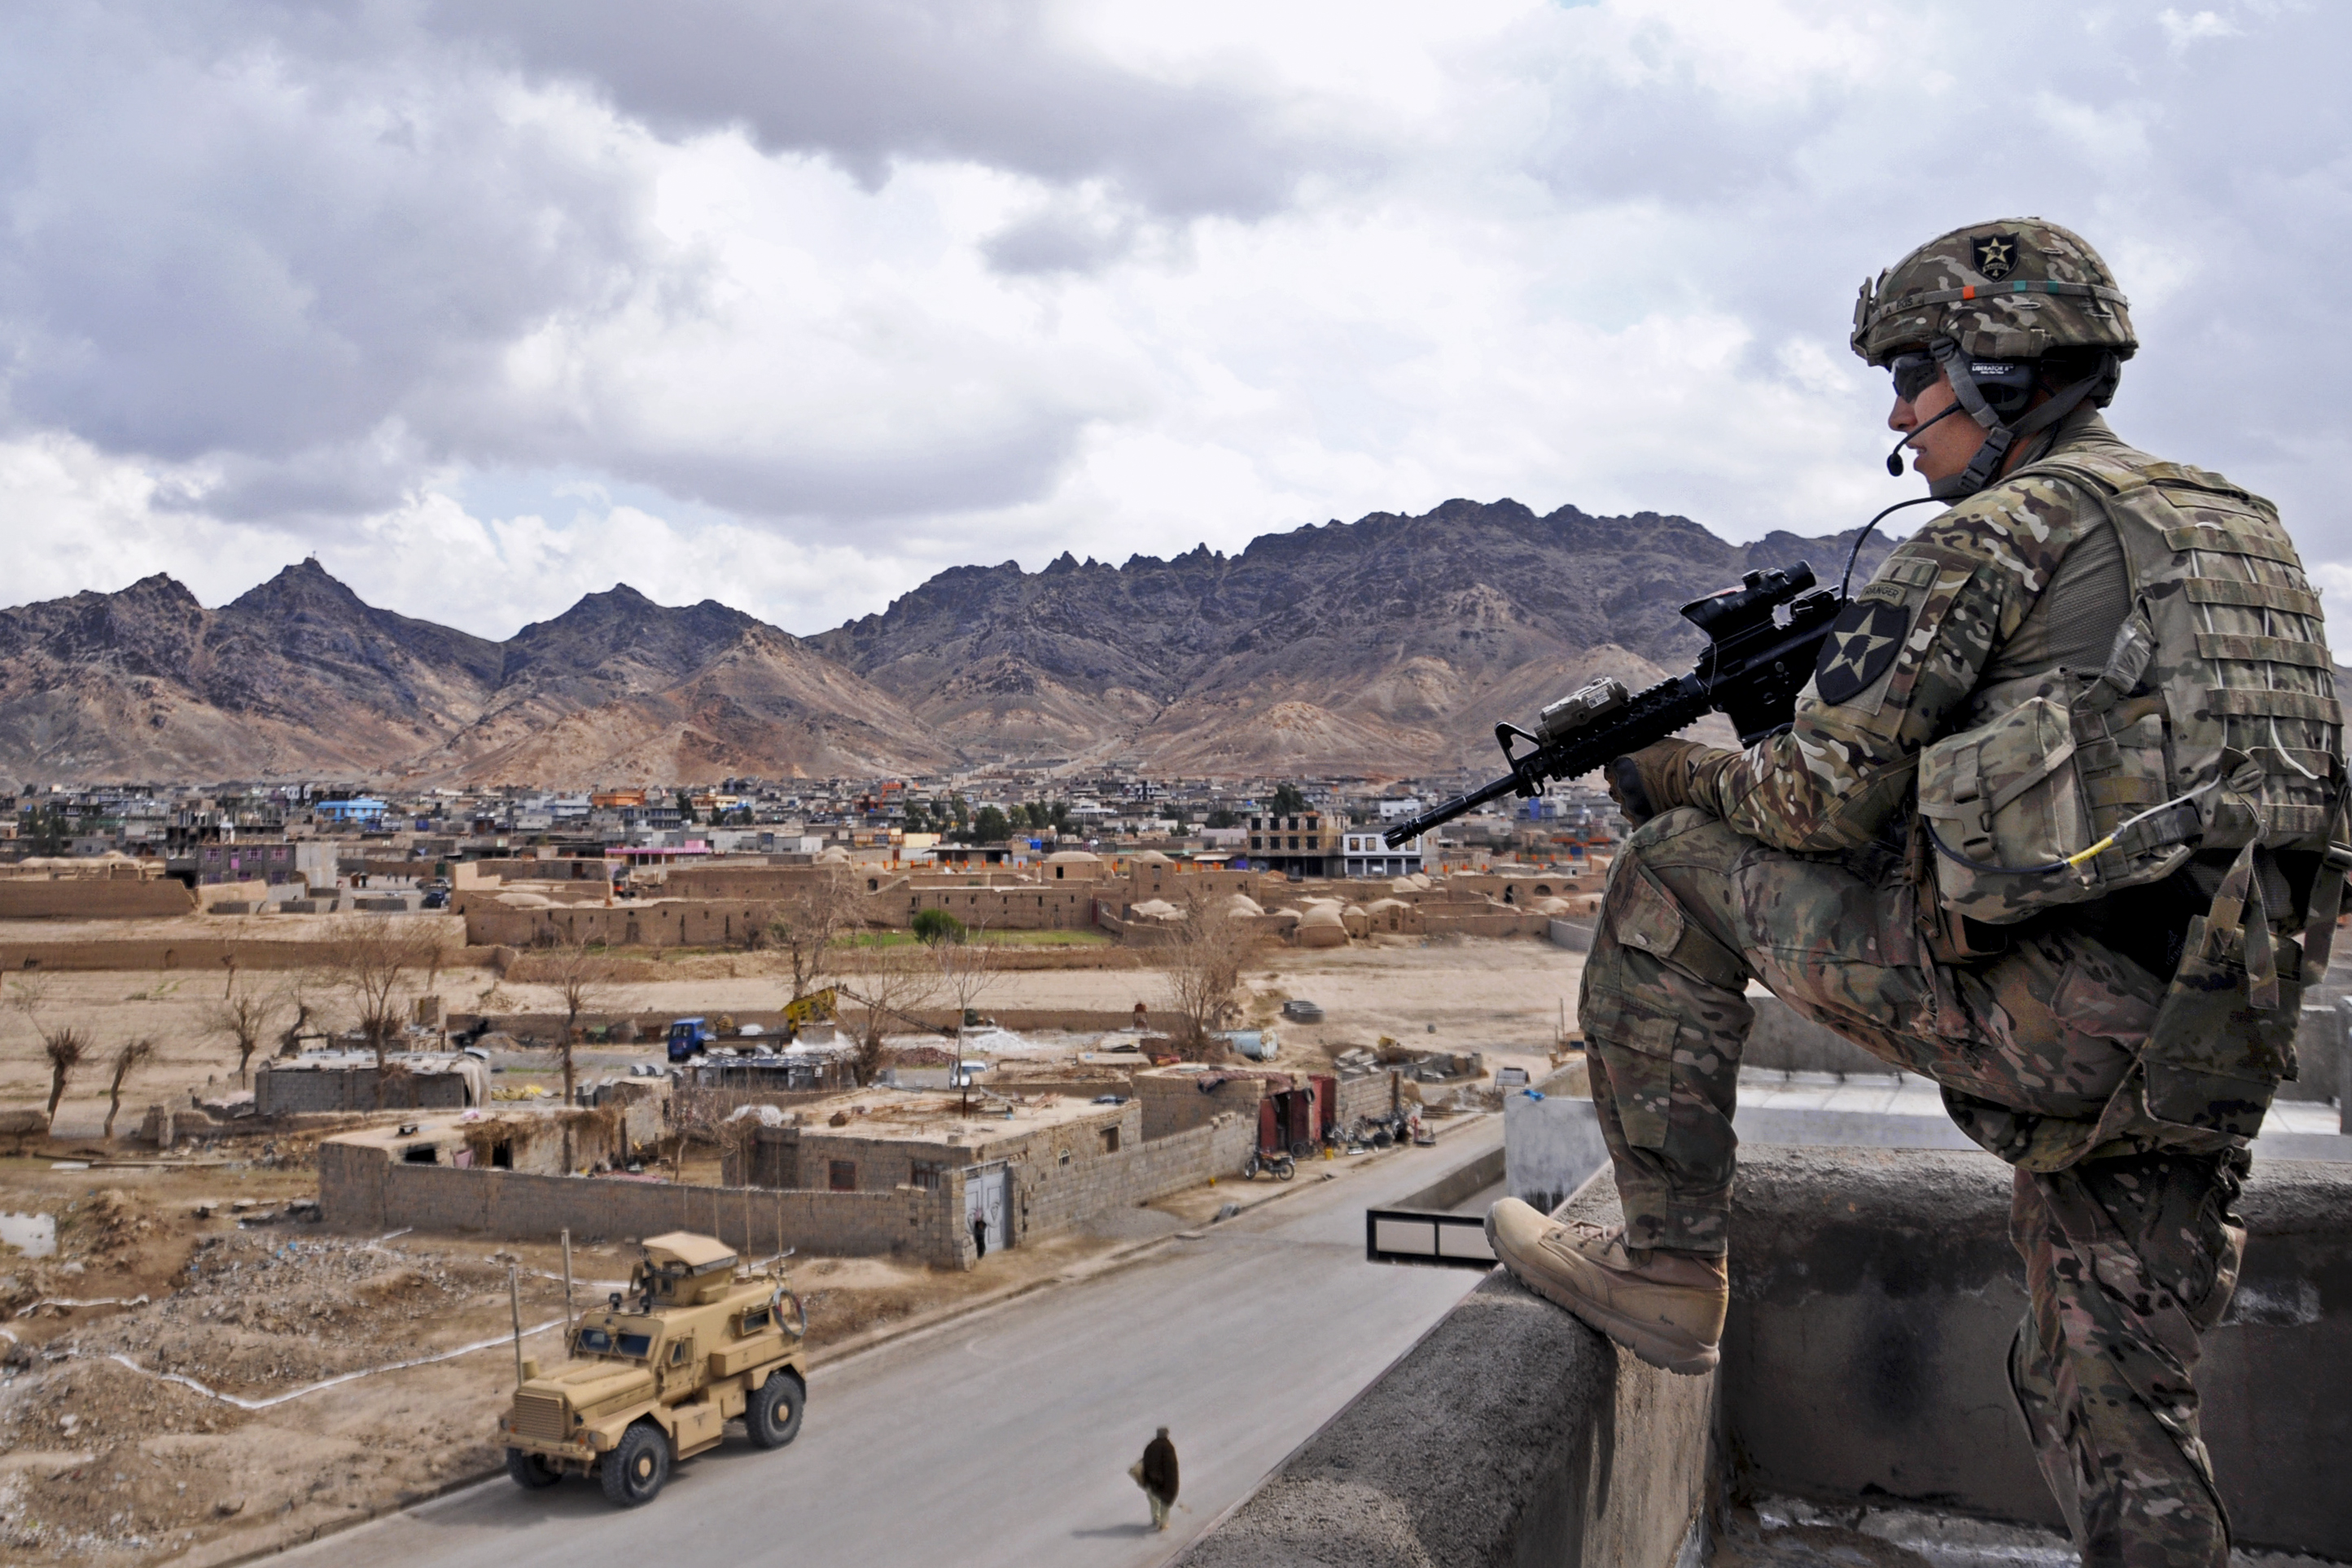 U.S. Army 1st Lt. Robert Wolfe, security force platoon leader for Provincial Reconstruction Team (PRT) Farah, provides rooftop security during a key leader engagement in Farah City, Feb. 25. U.S. Navy photo by Lt. j.g. Matthew Stroup